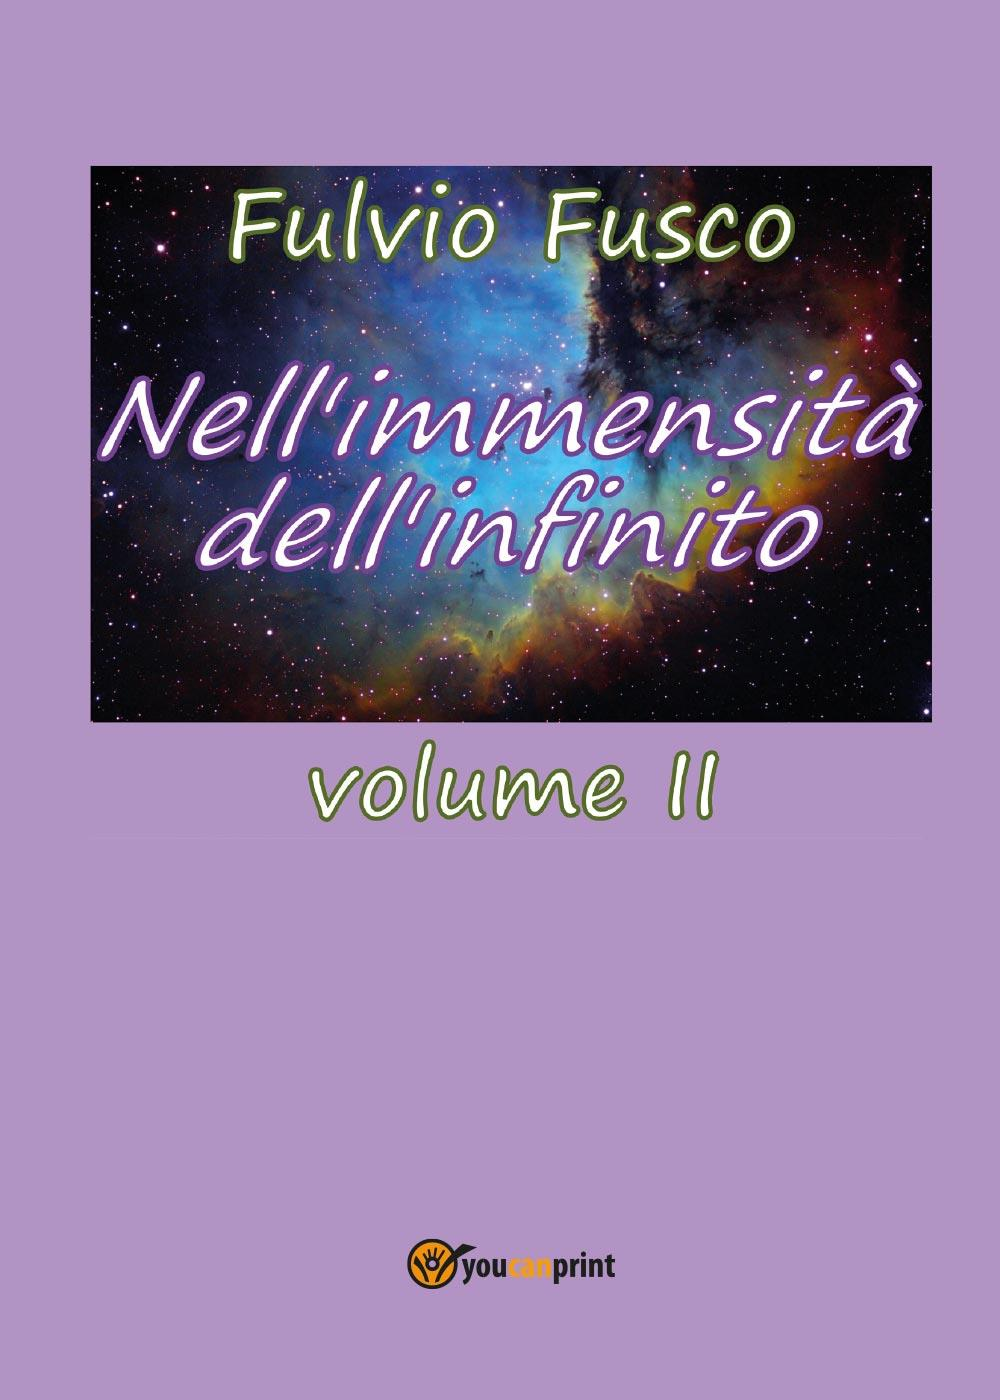 Nell'immensità dell'infinito. Vol. II